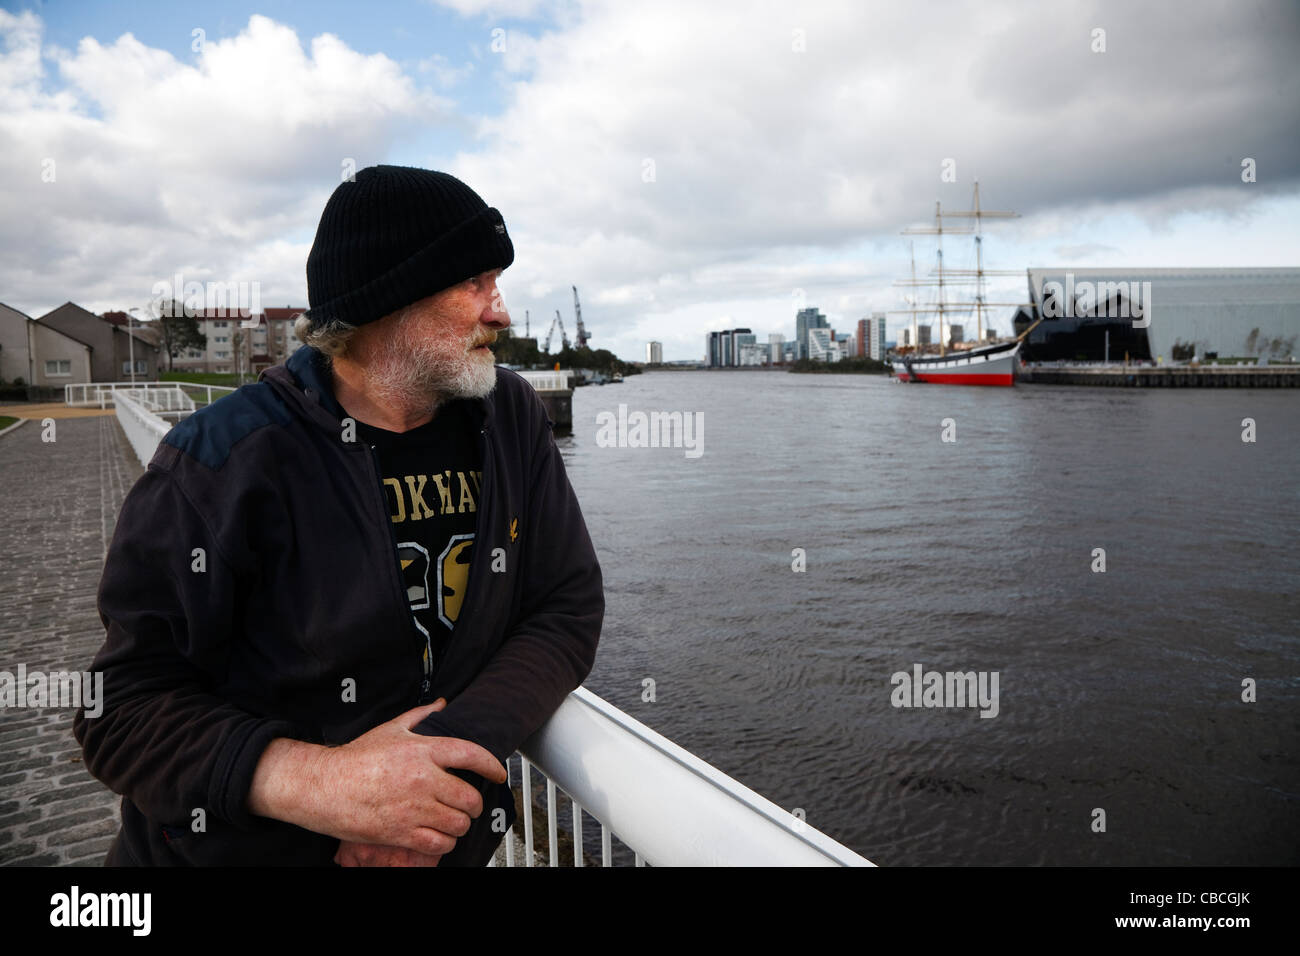 Unemployed Adult man looking over railings from a walkway in Govan, across the River Clyde to the new Riverside - Stock Image